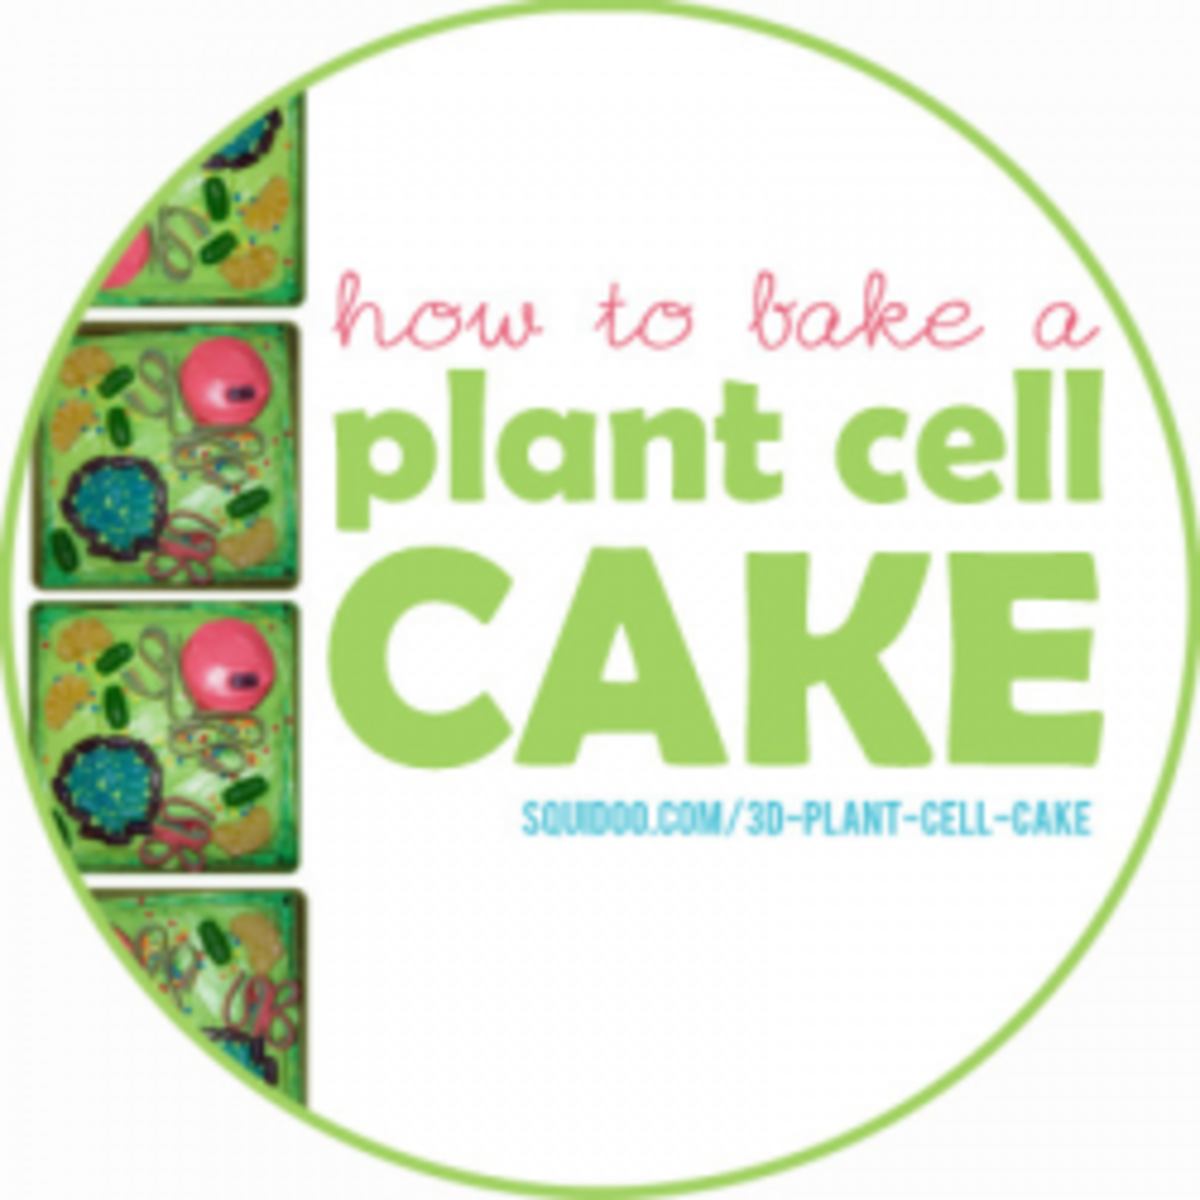 3D Plant Cell Cakes | HubPages - photo#31